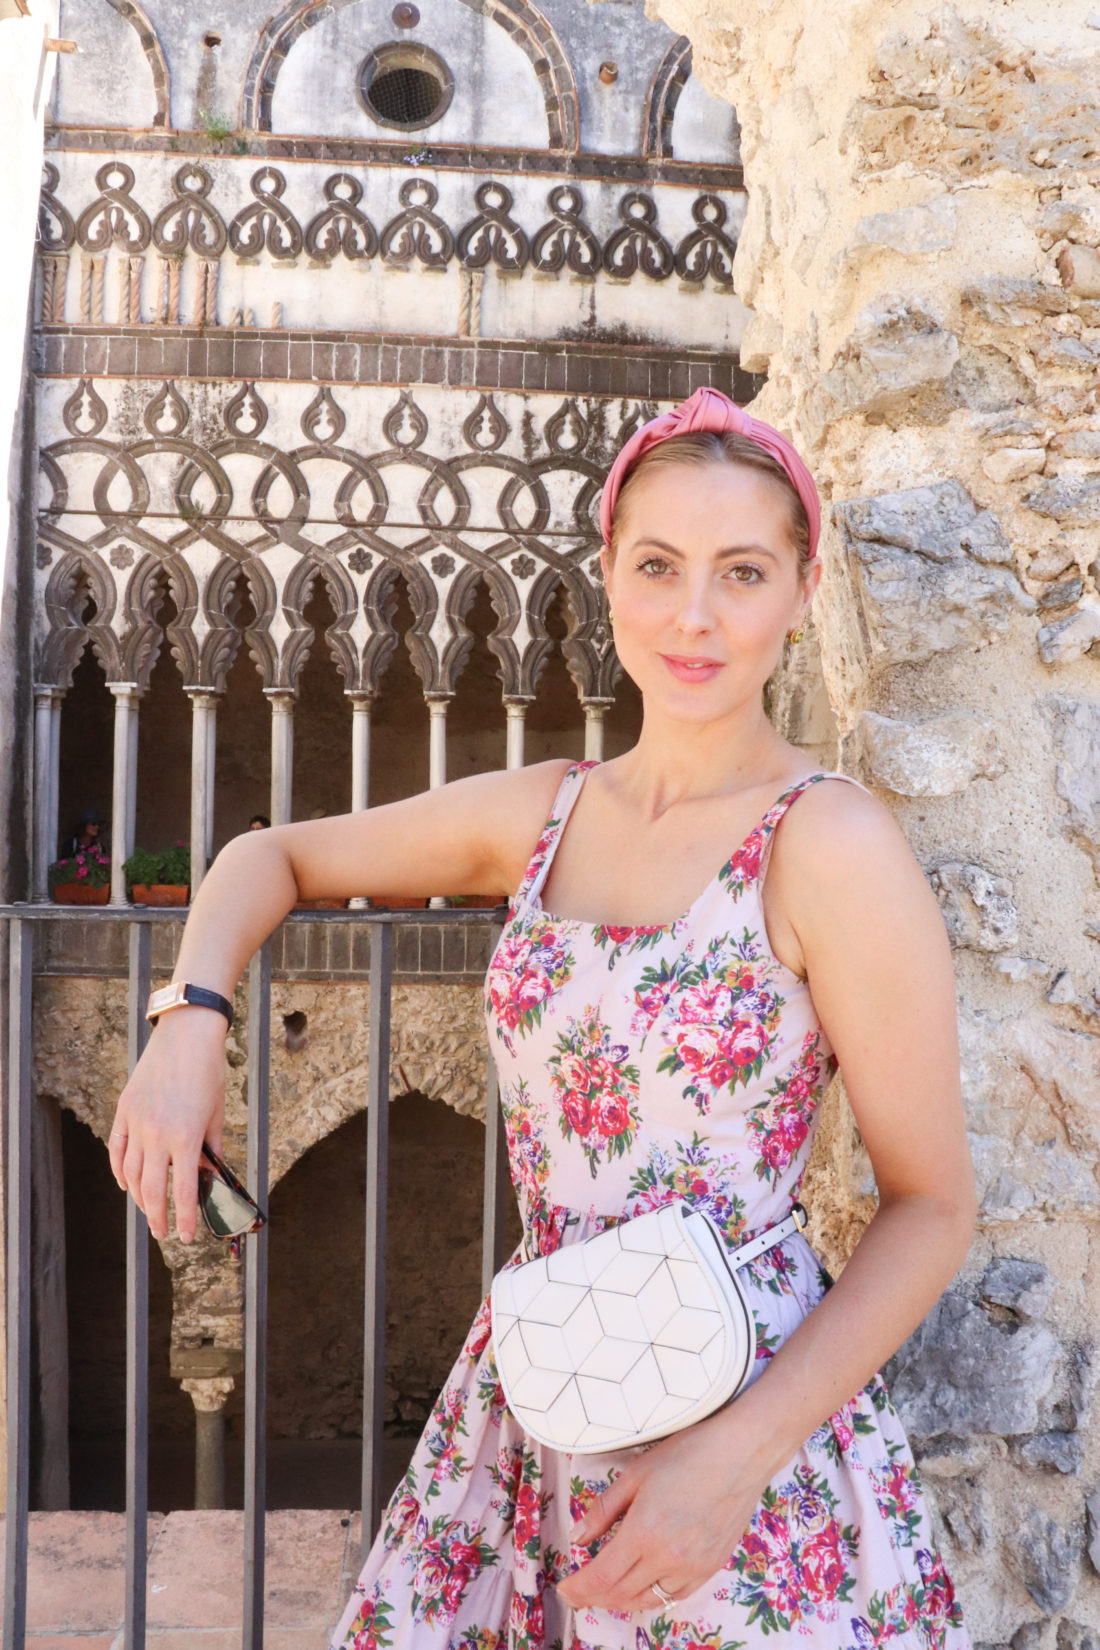 Eva Amurri Martino in a floral sundress in Italy